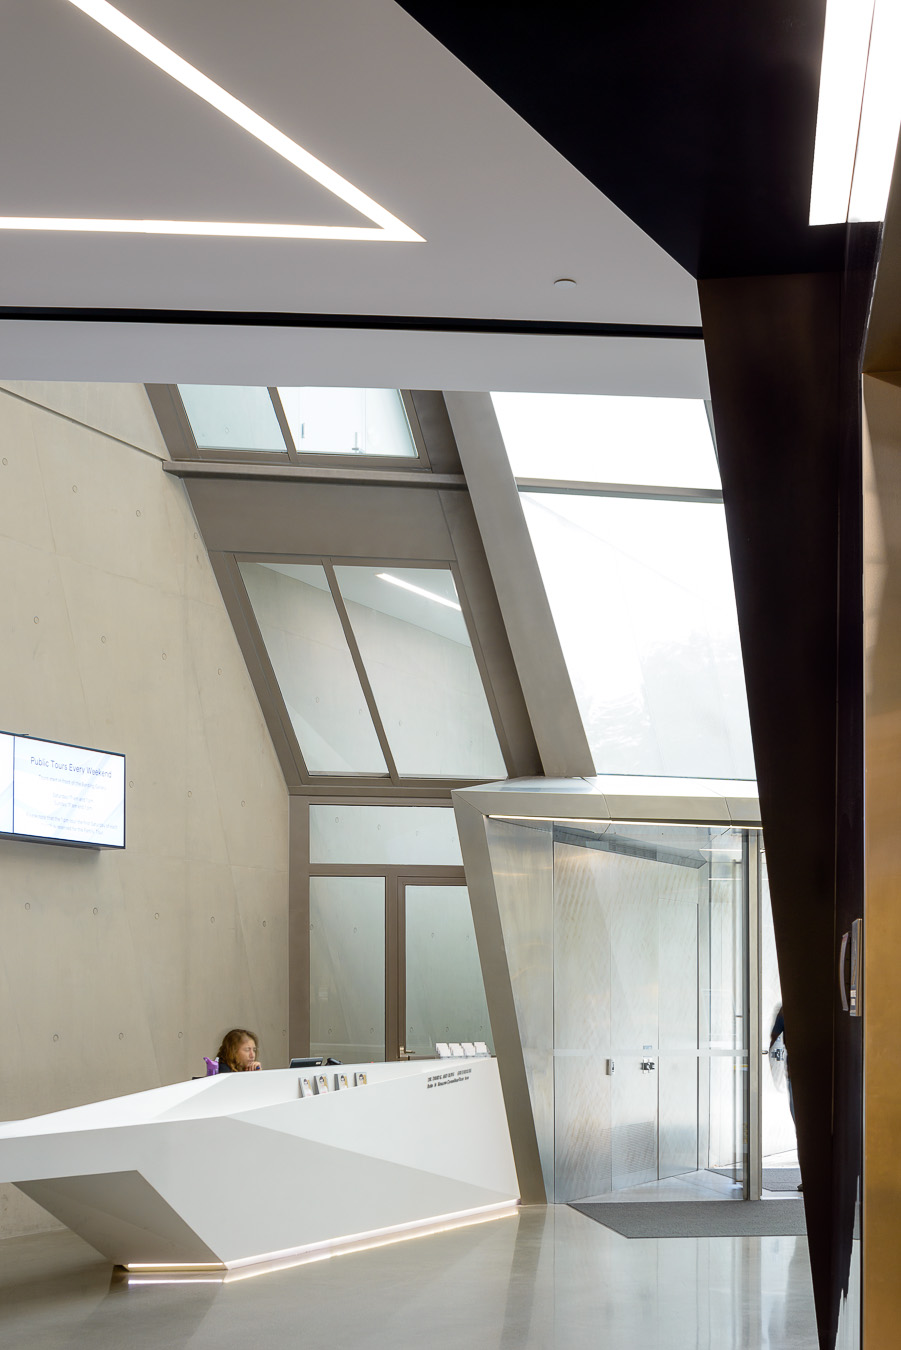 207-Zaha Hadid Broad Museum Lansing Doublespace Toronto Architectural Photography.jpg